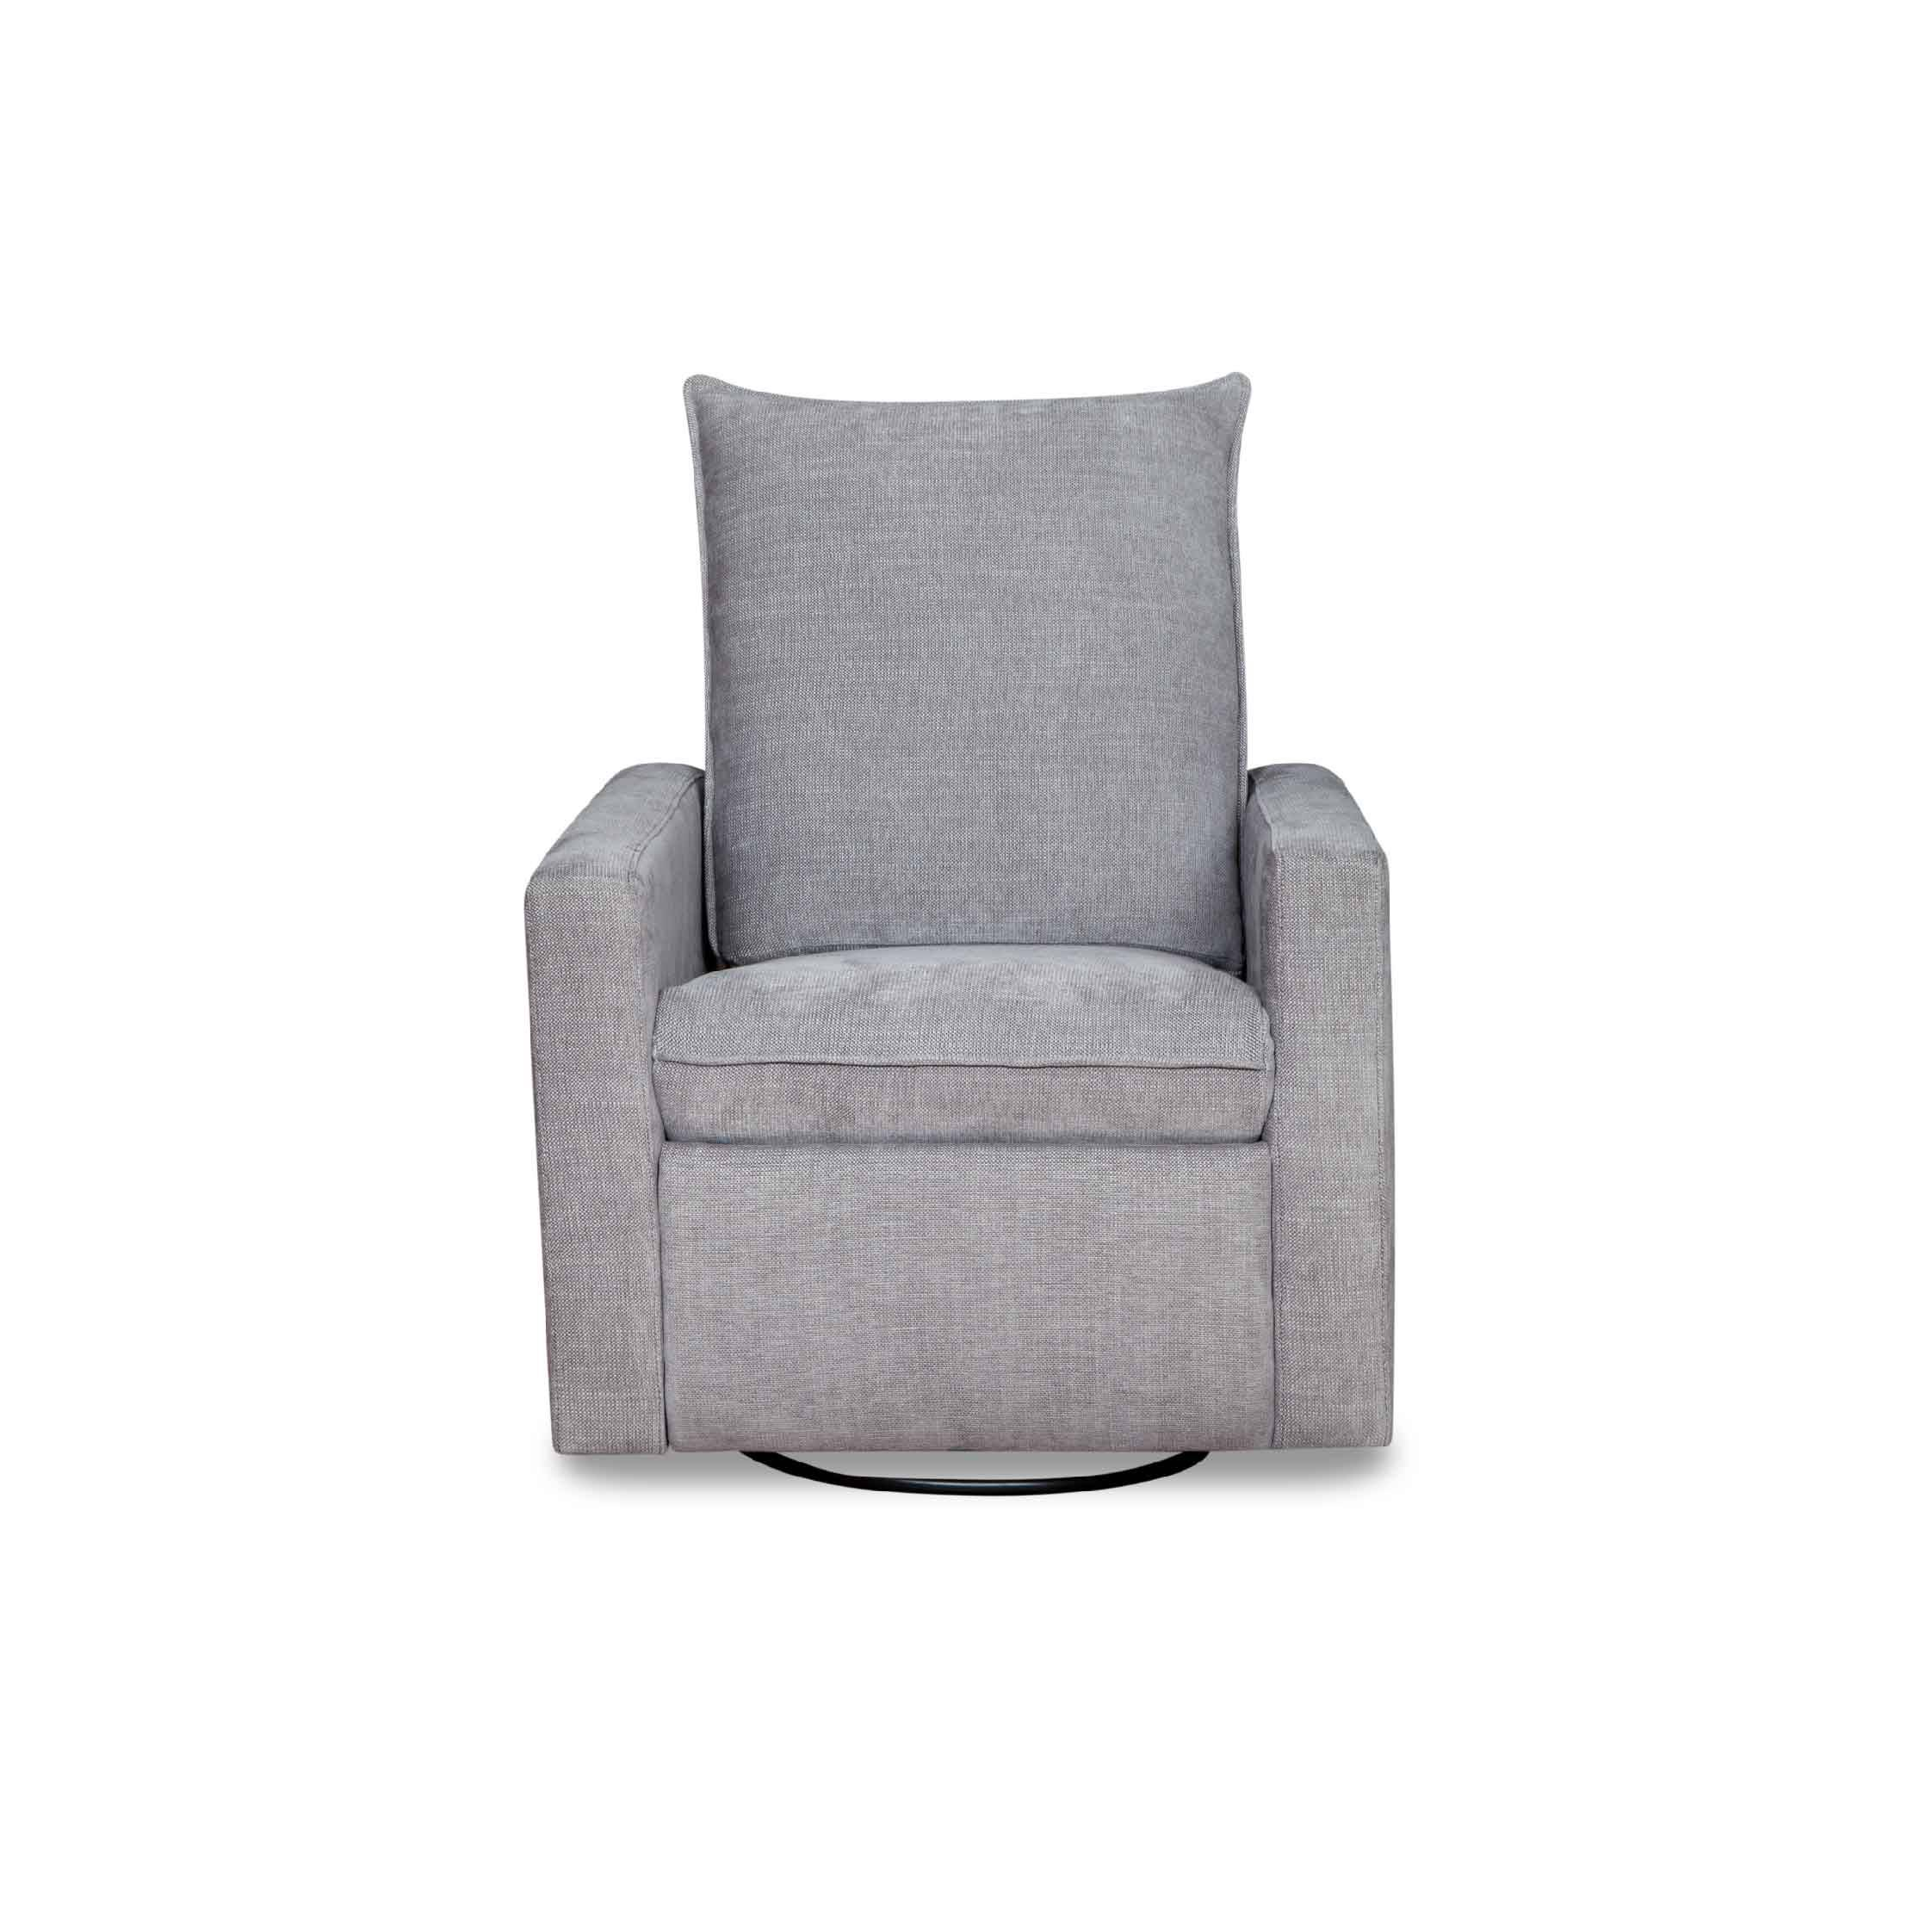 Household furniture modern relaxing electric swivel recliner chair